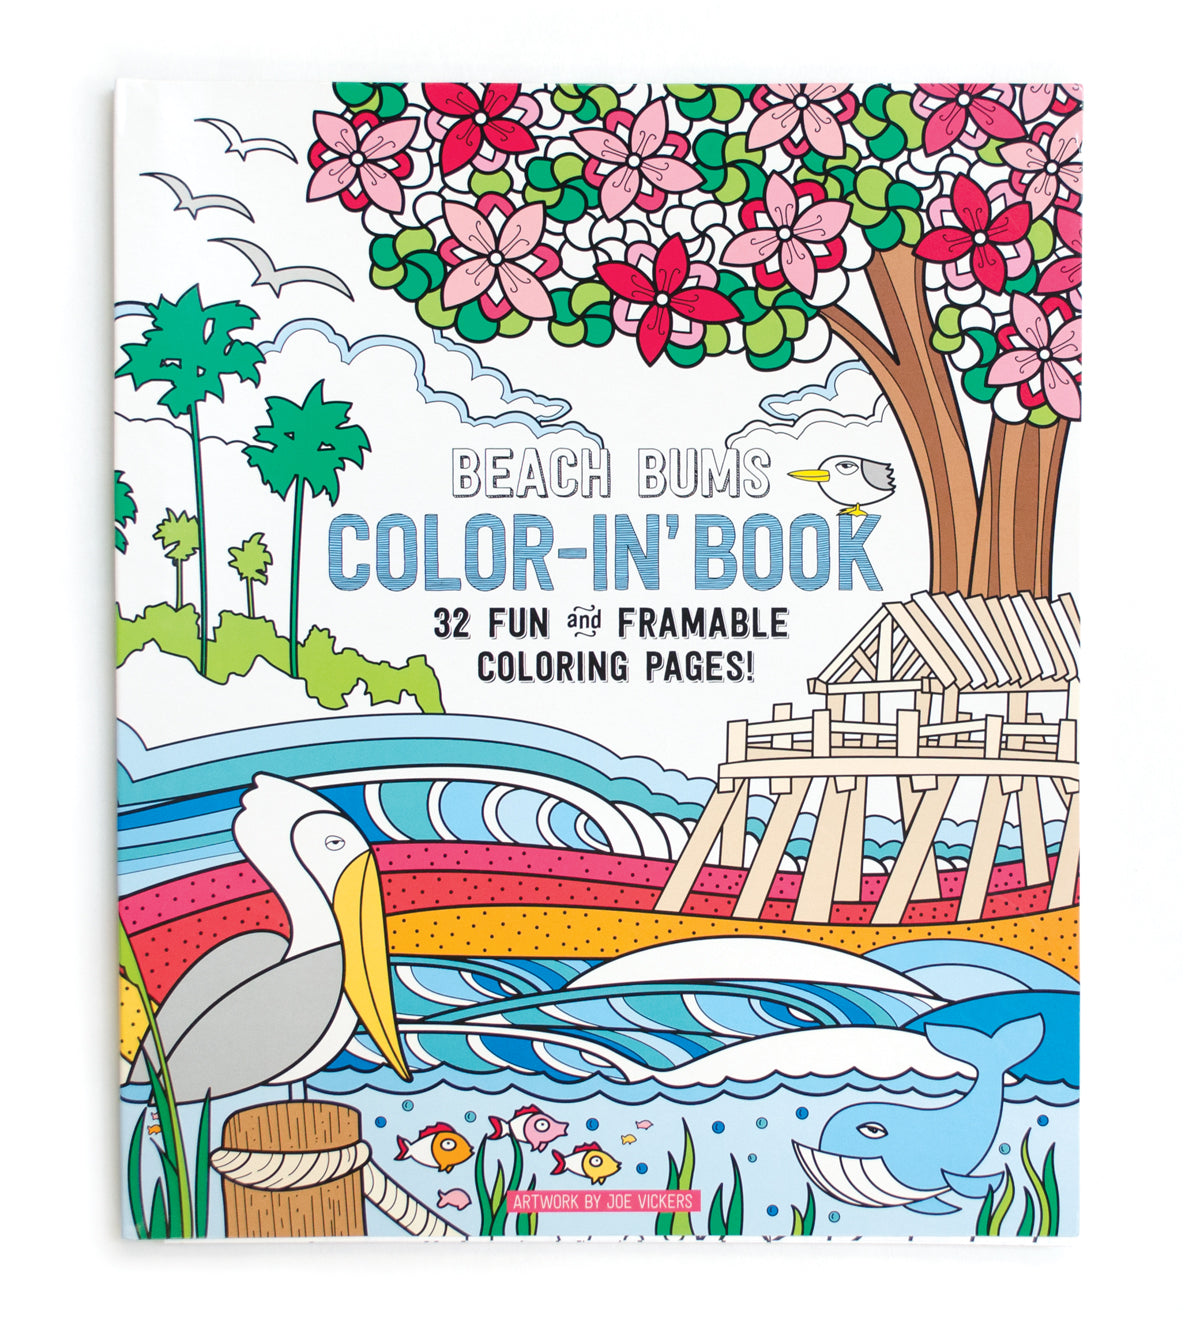 BEACH BUMS COLOR-IN BOOK